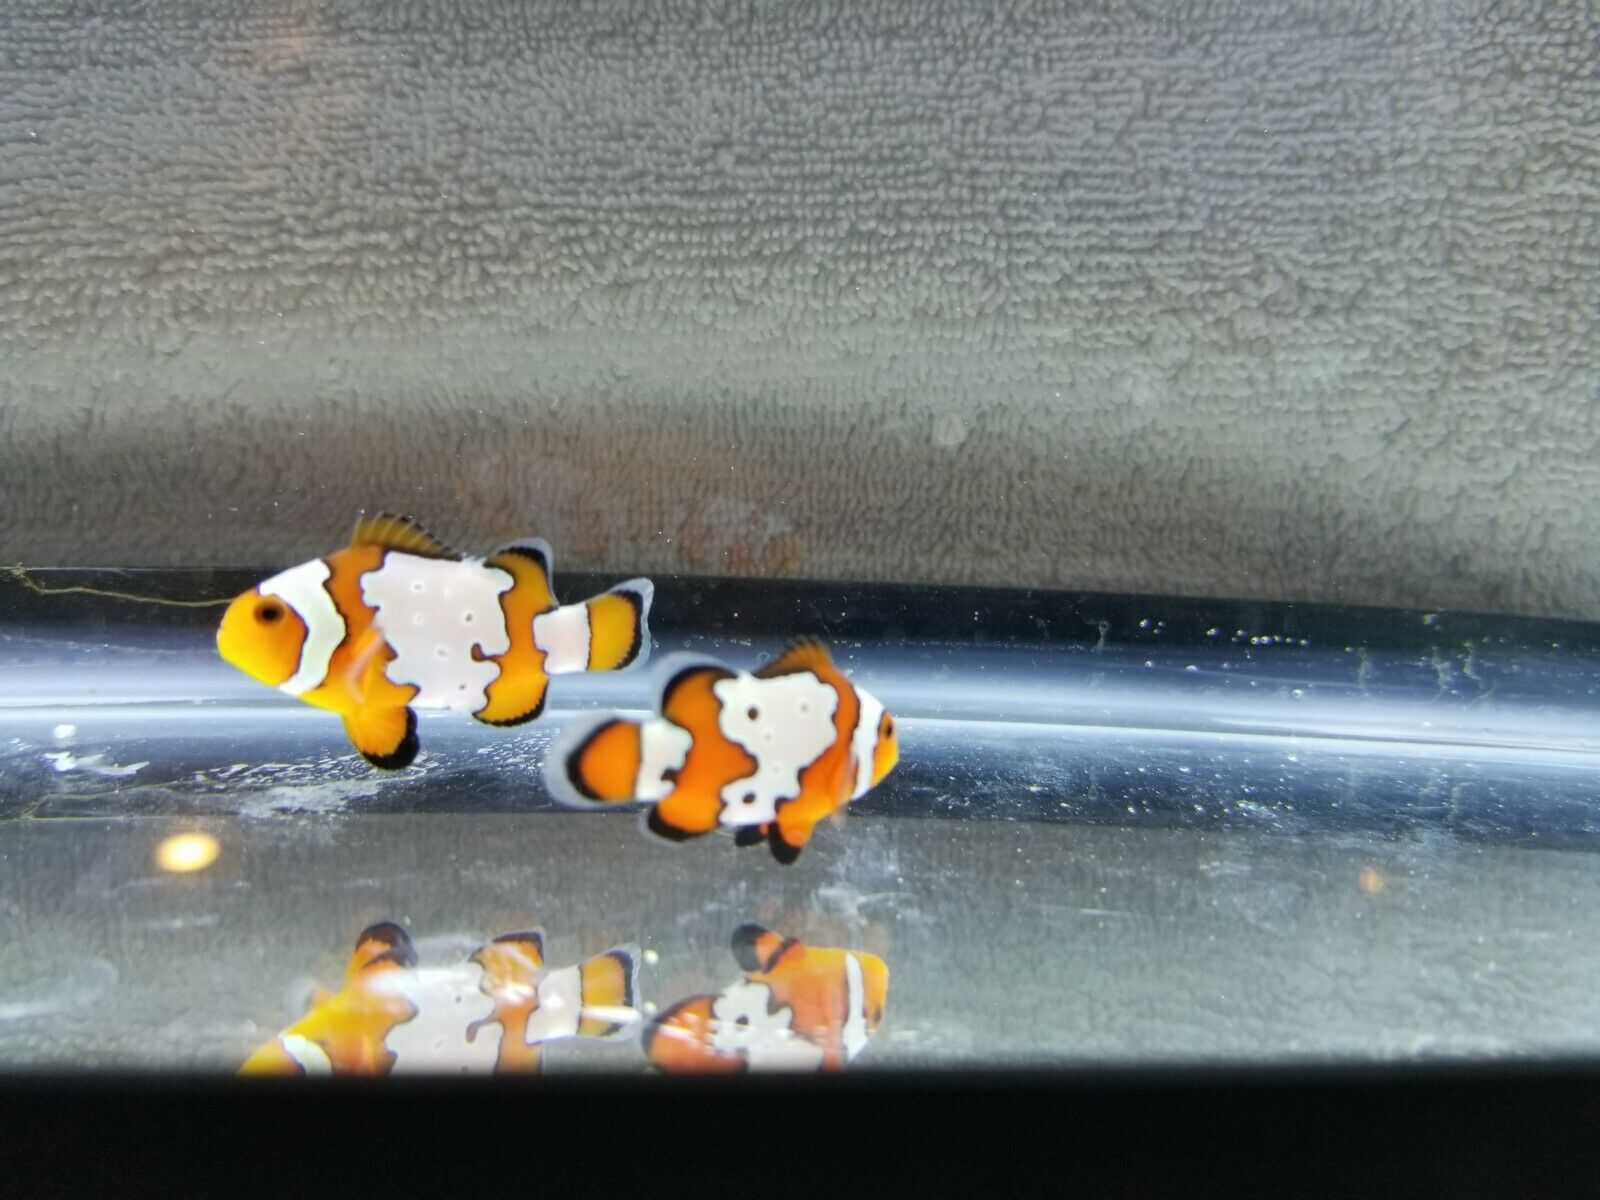 Fancy Snowflake Bullethole Clownfish Medium Pair 50 00 One Day Shipping Clown Fish Saltwater Fish Tanks Aquarium Fish